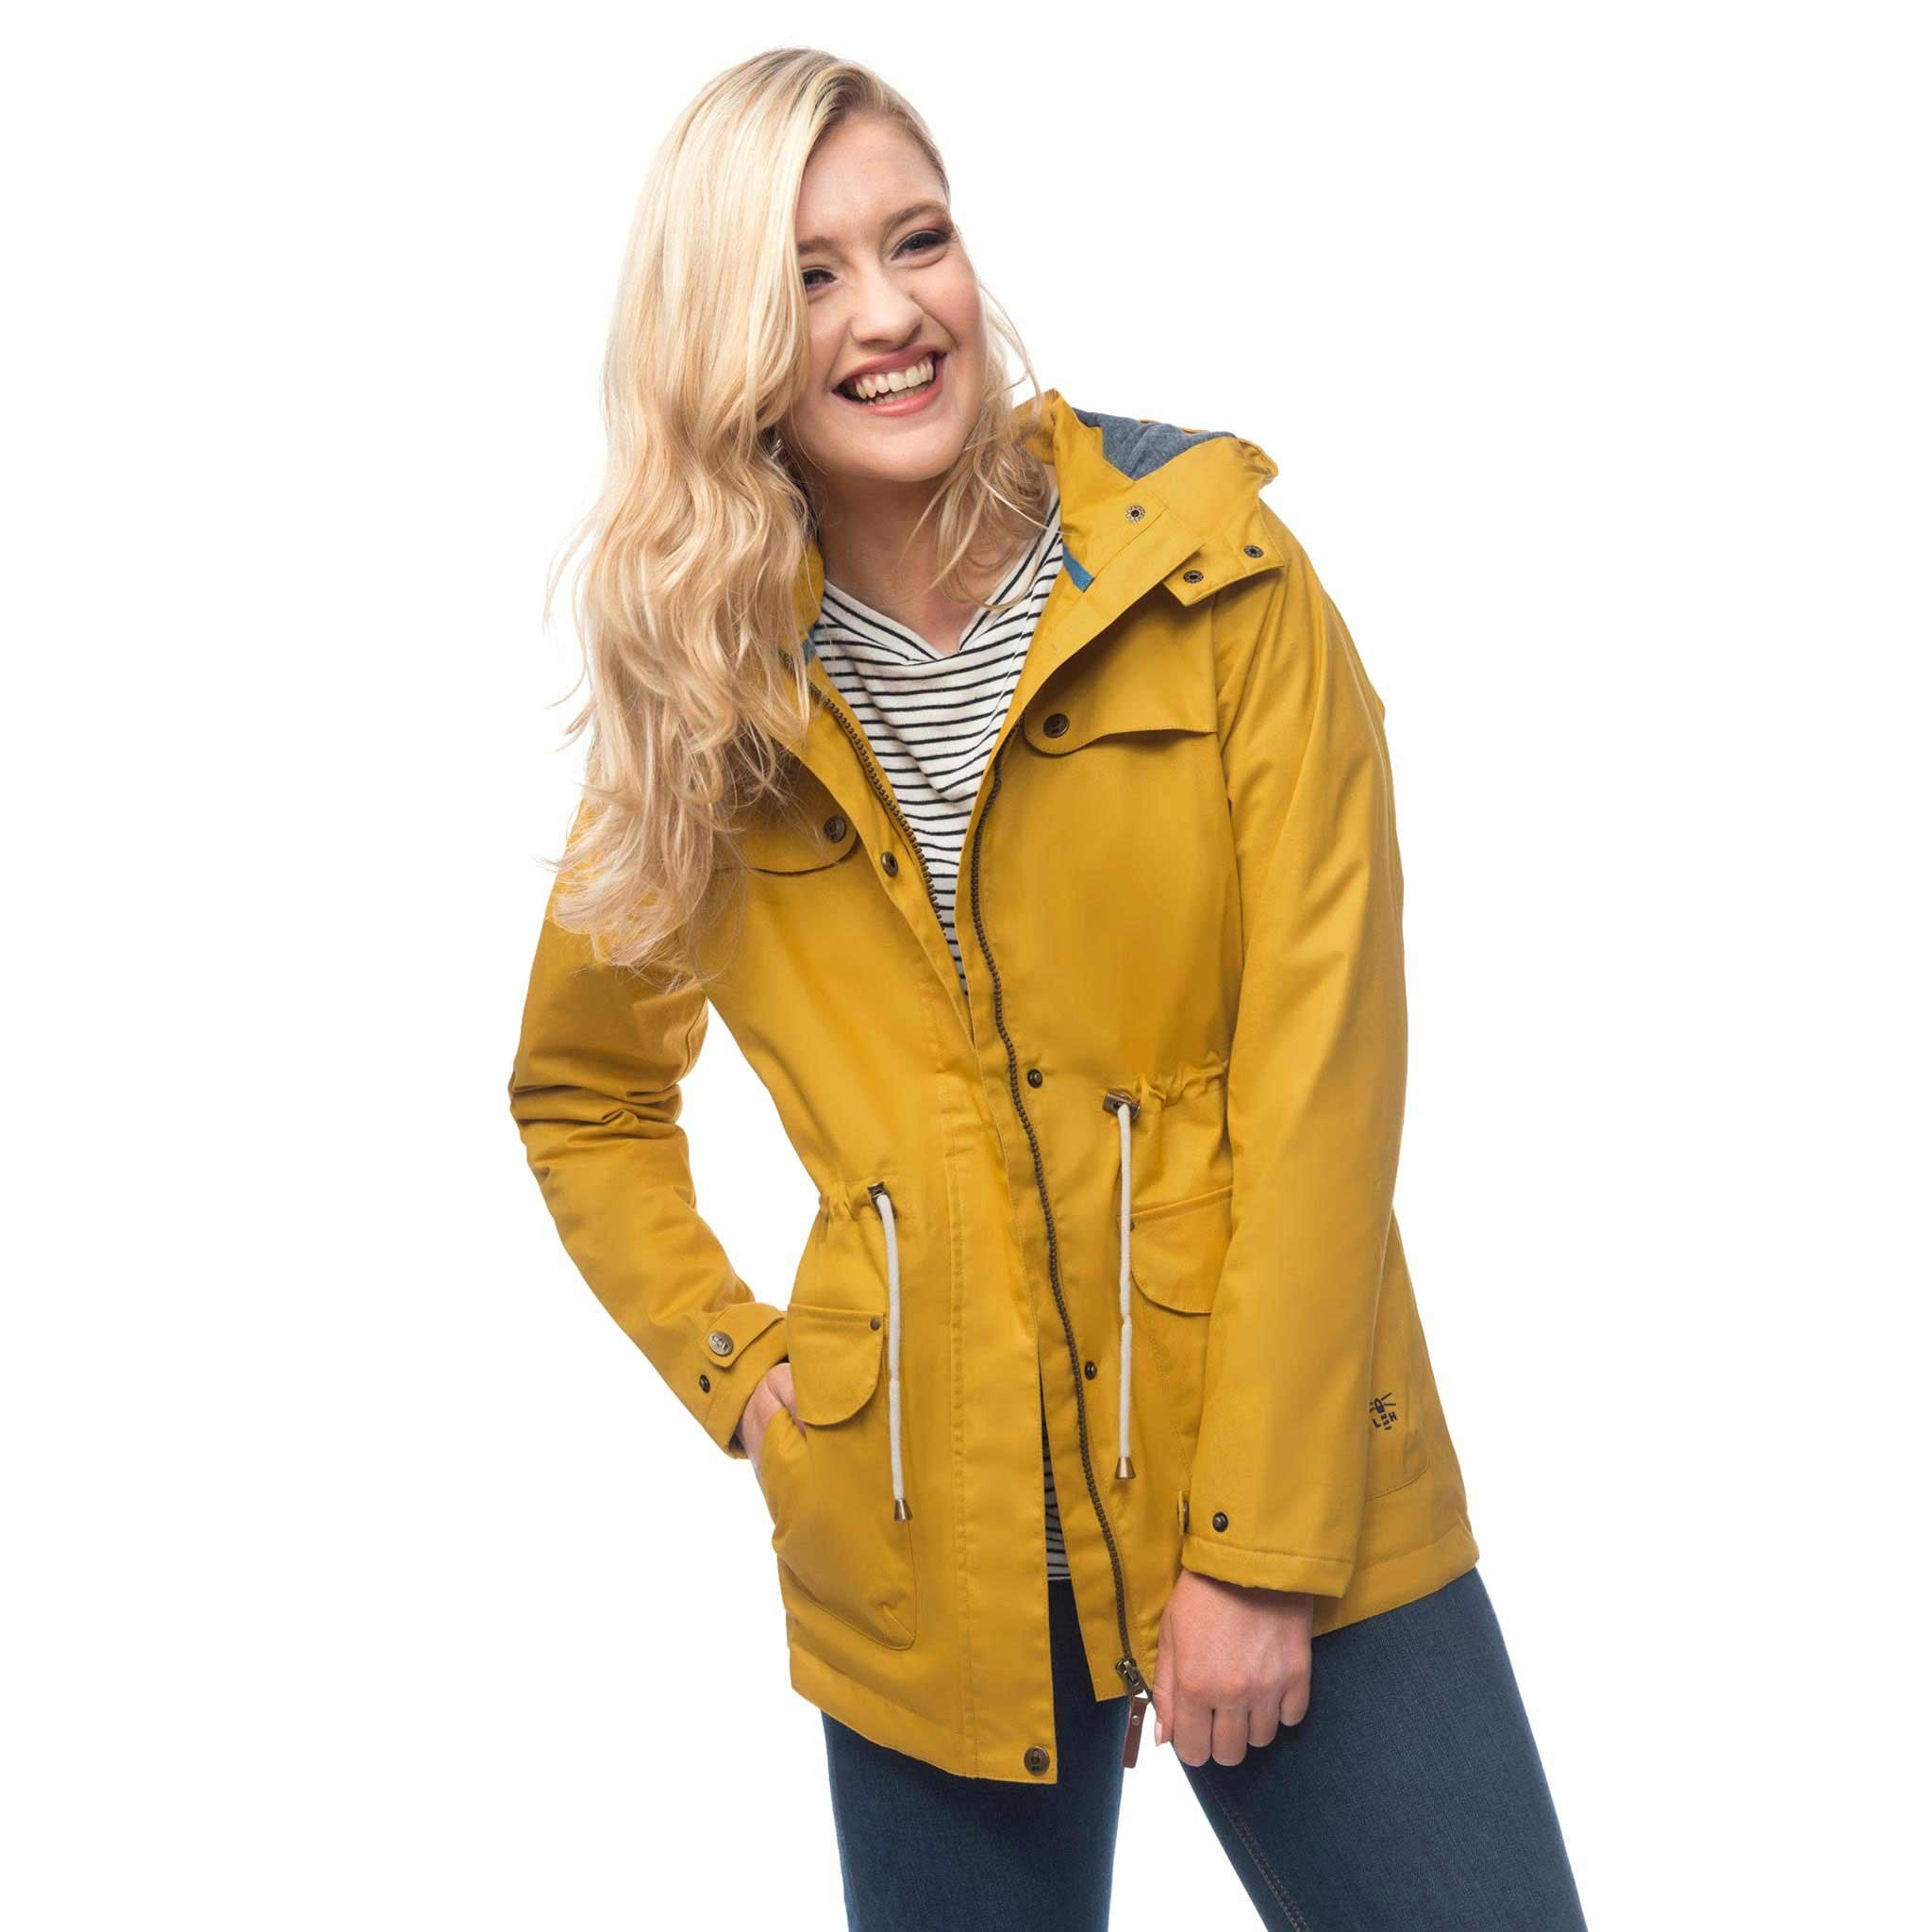 Lighthouse Womens Lana Waterproof Hooded Raincoat in Yellow. Coat unzipped. Hands in pockets.